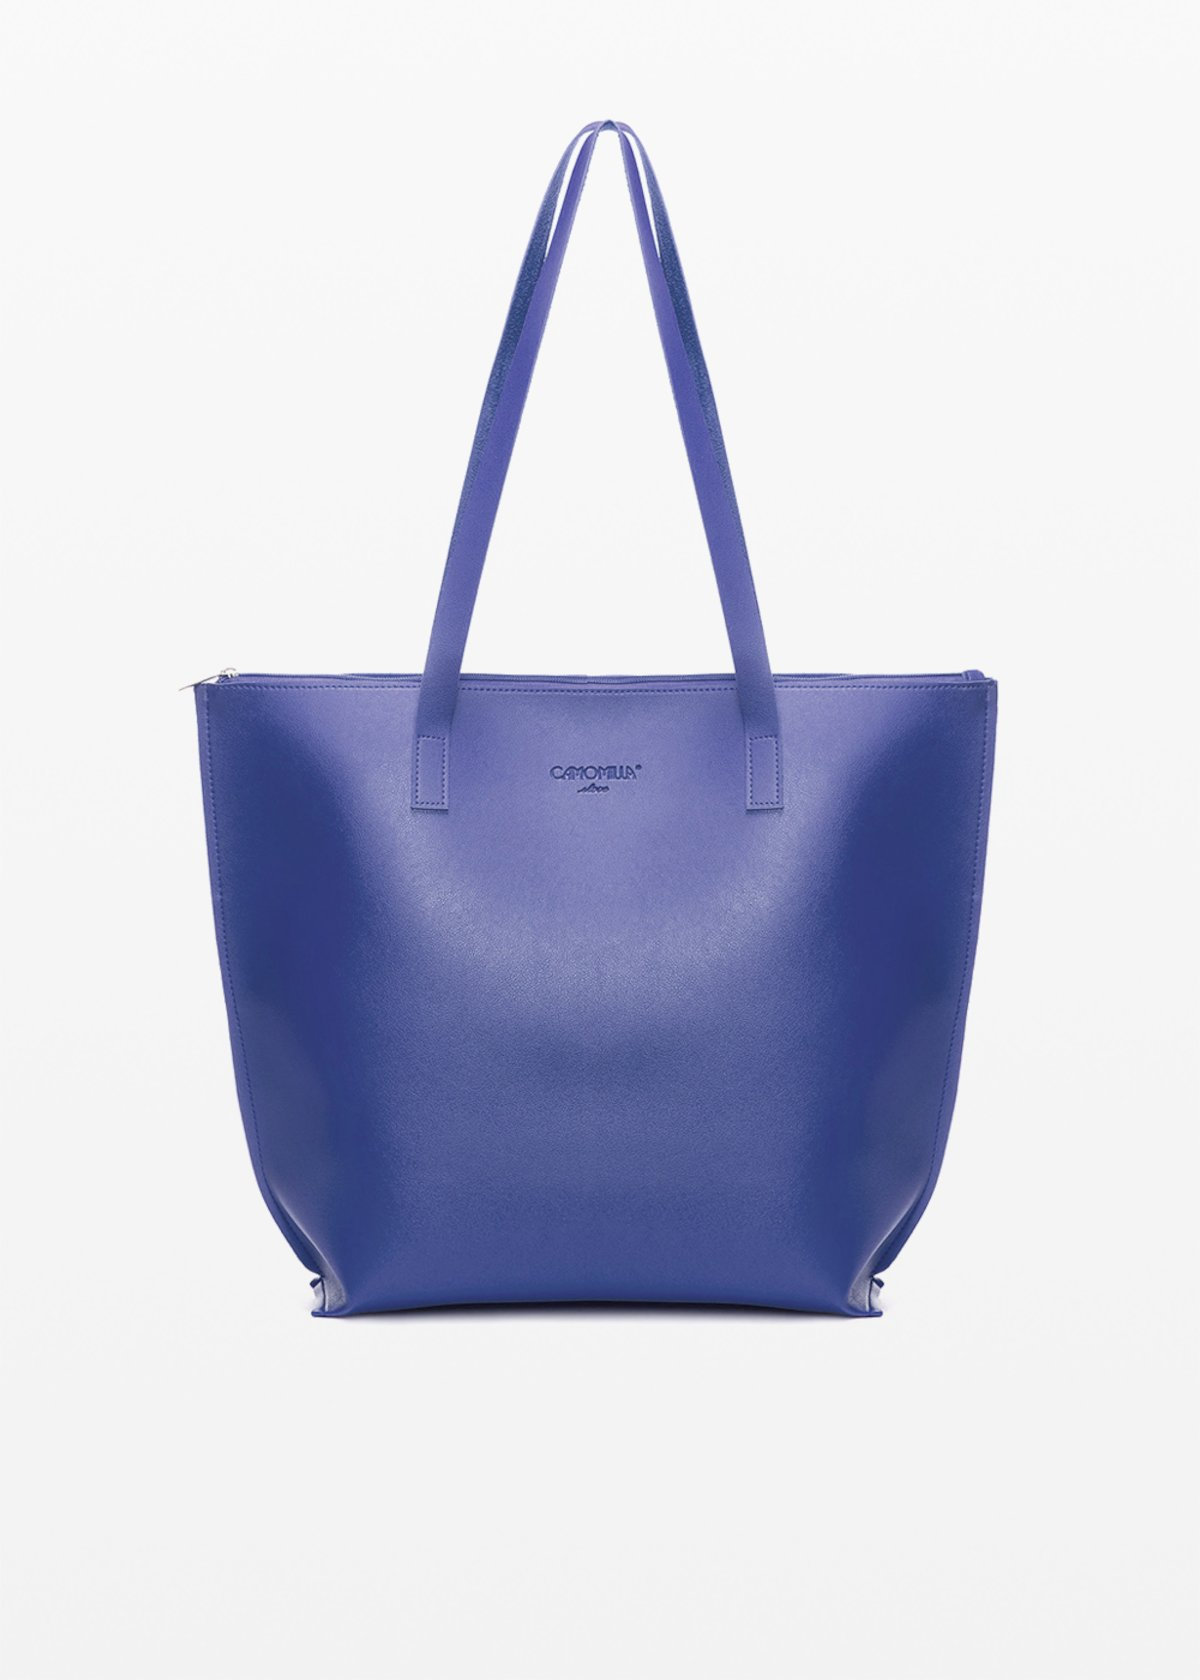 Faux leather Bady6 shopping bag unlined with double handles - Blue / Mineral - Woman - Category image